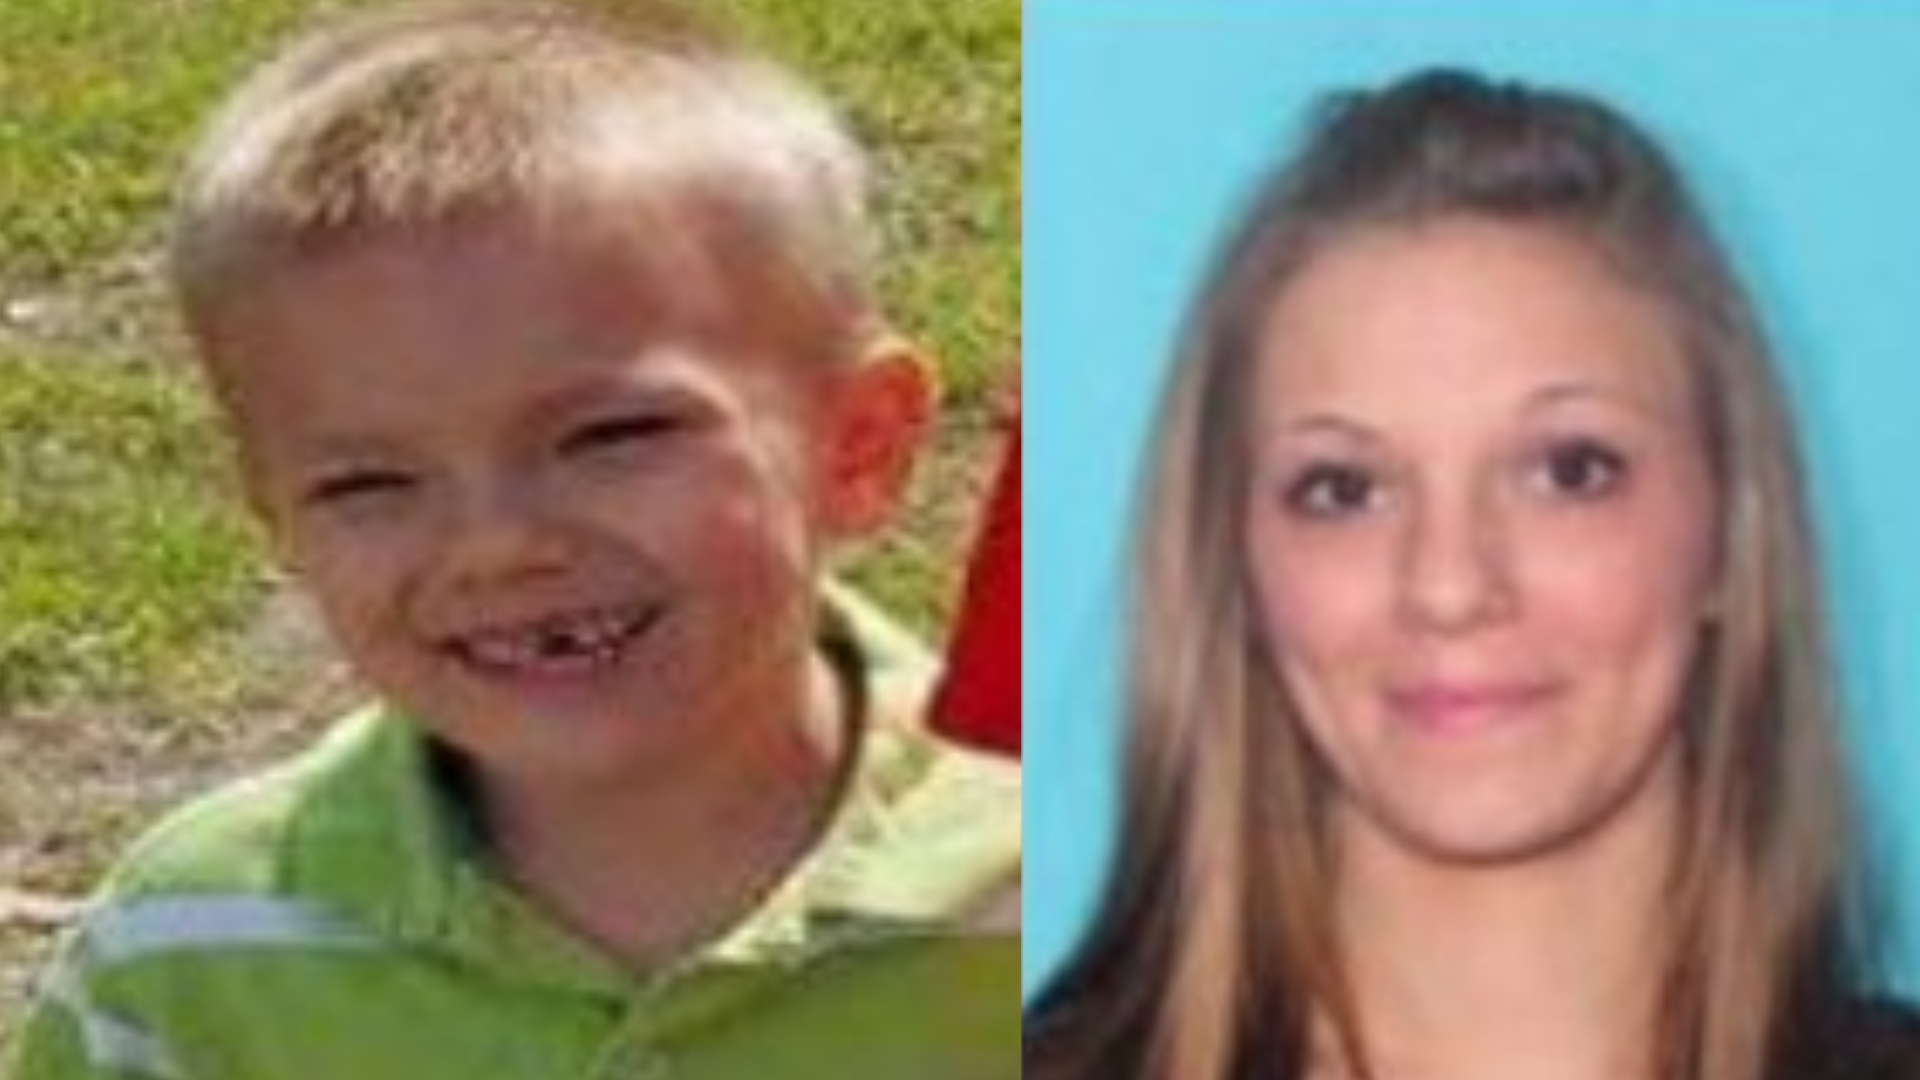 MISSING CHILD Alert canceled for 2-year-old Jacksonville boy